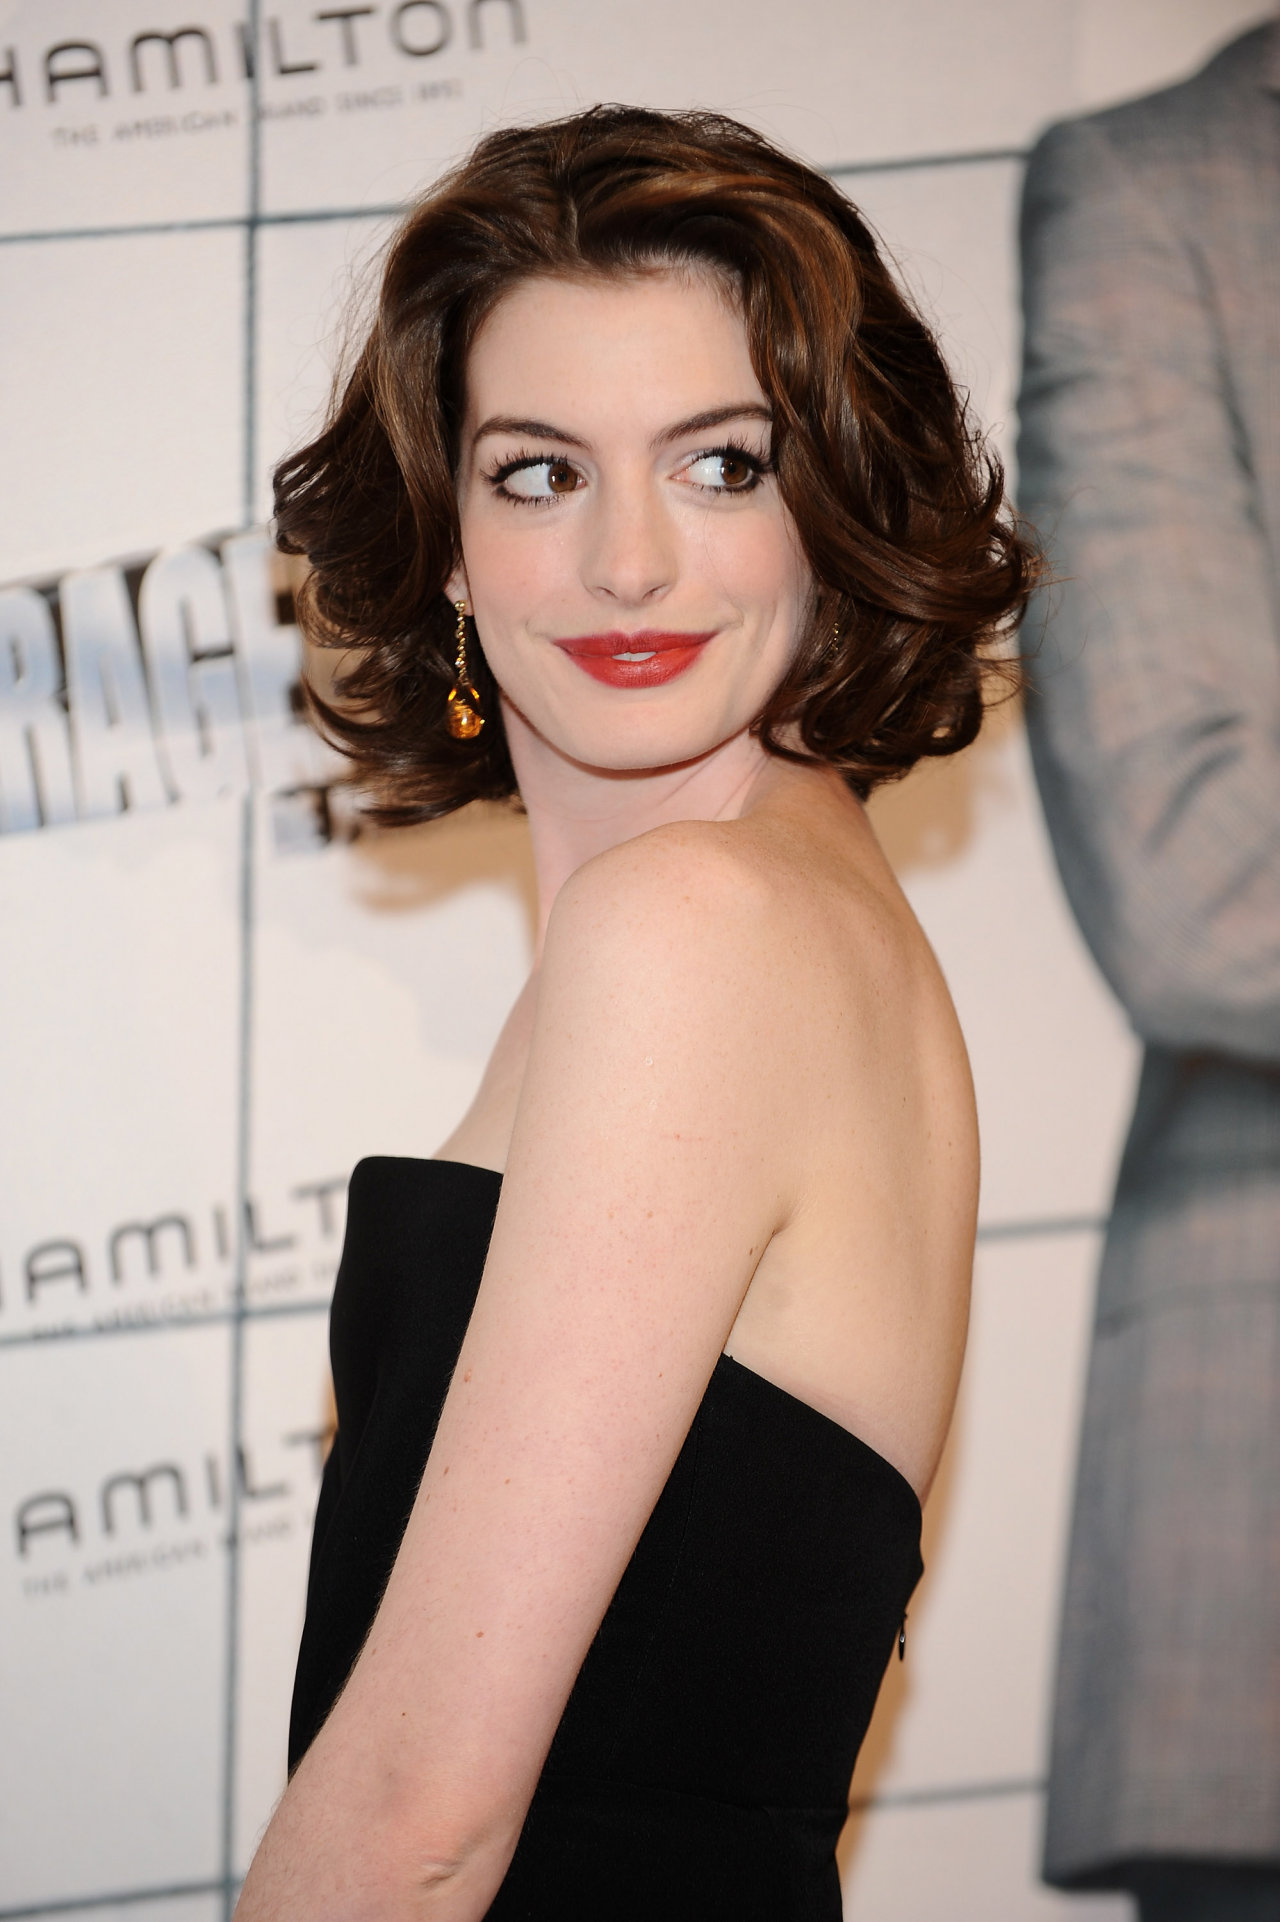 Anne Hathaway Wallpapers 35697 Best Anne Hathaway Pictures